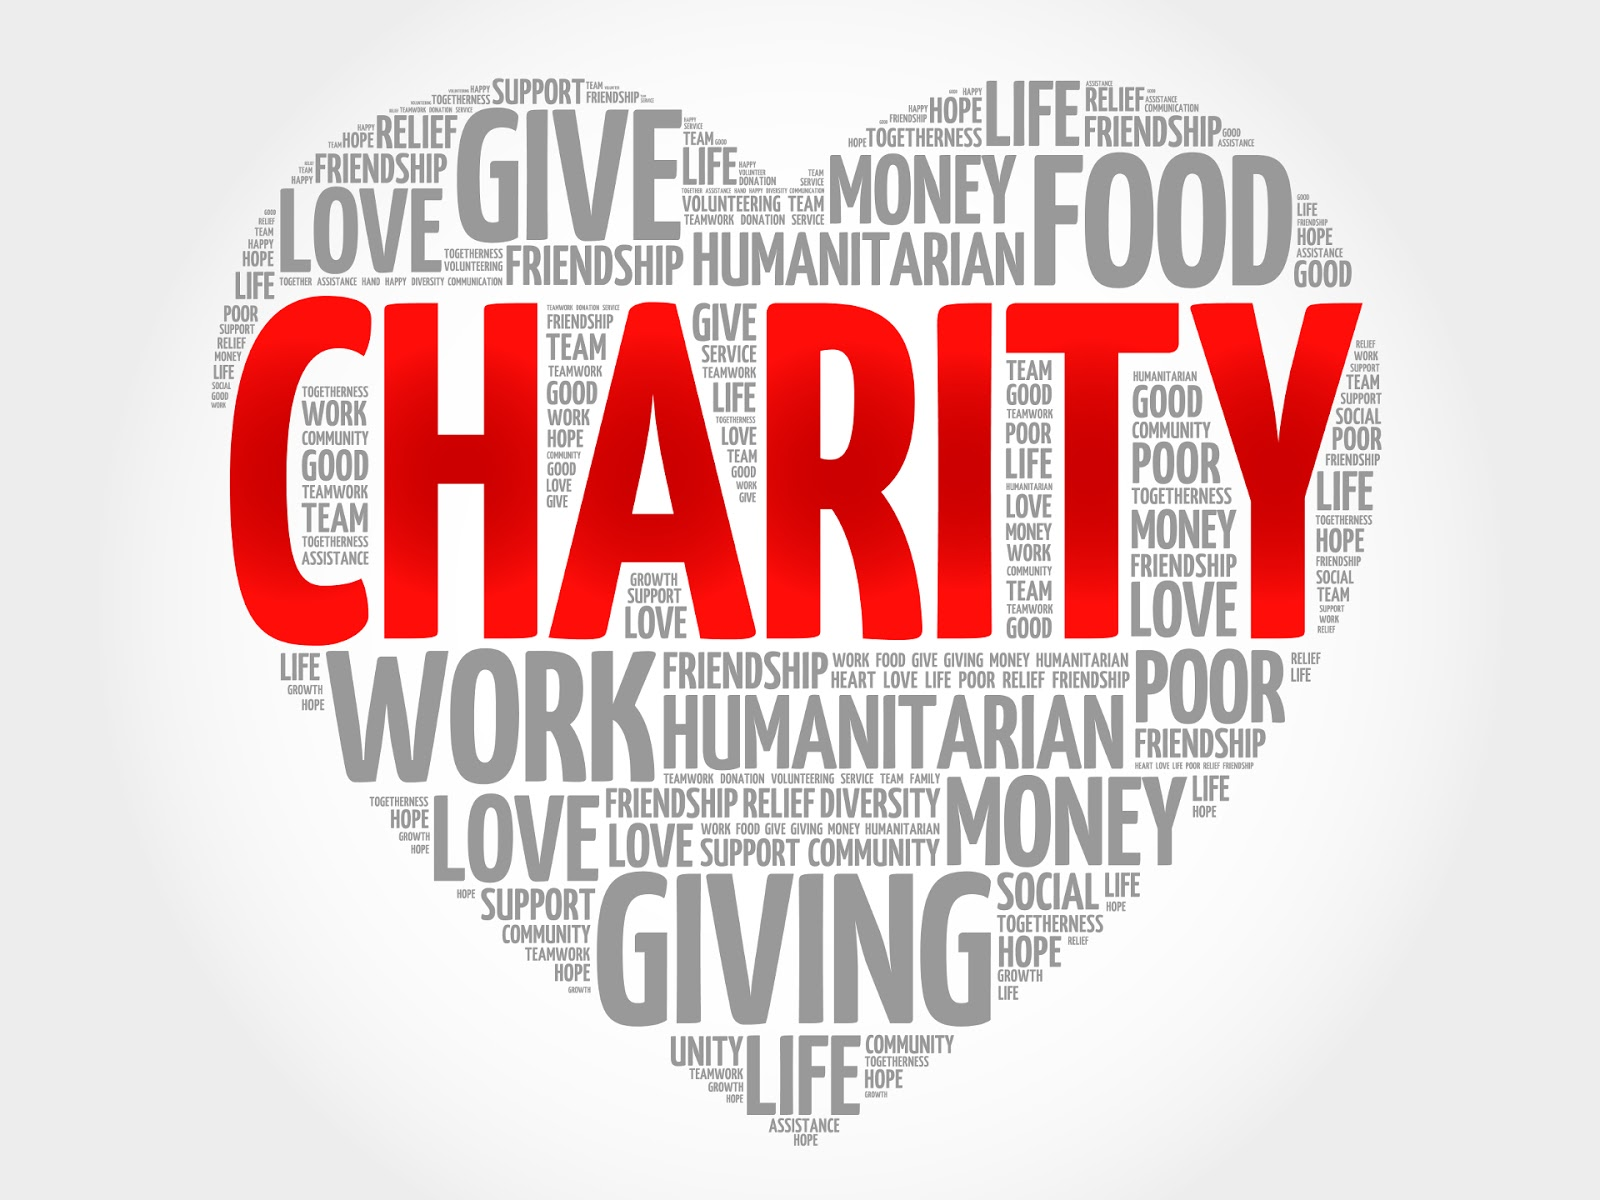 Issa Asad Shares His 3 Must-Dos Before Donating to Charity